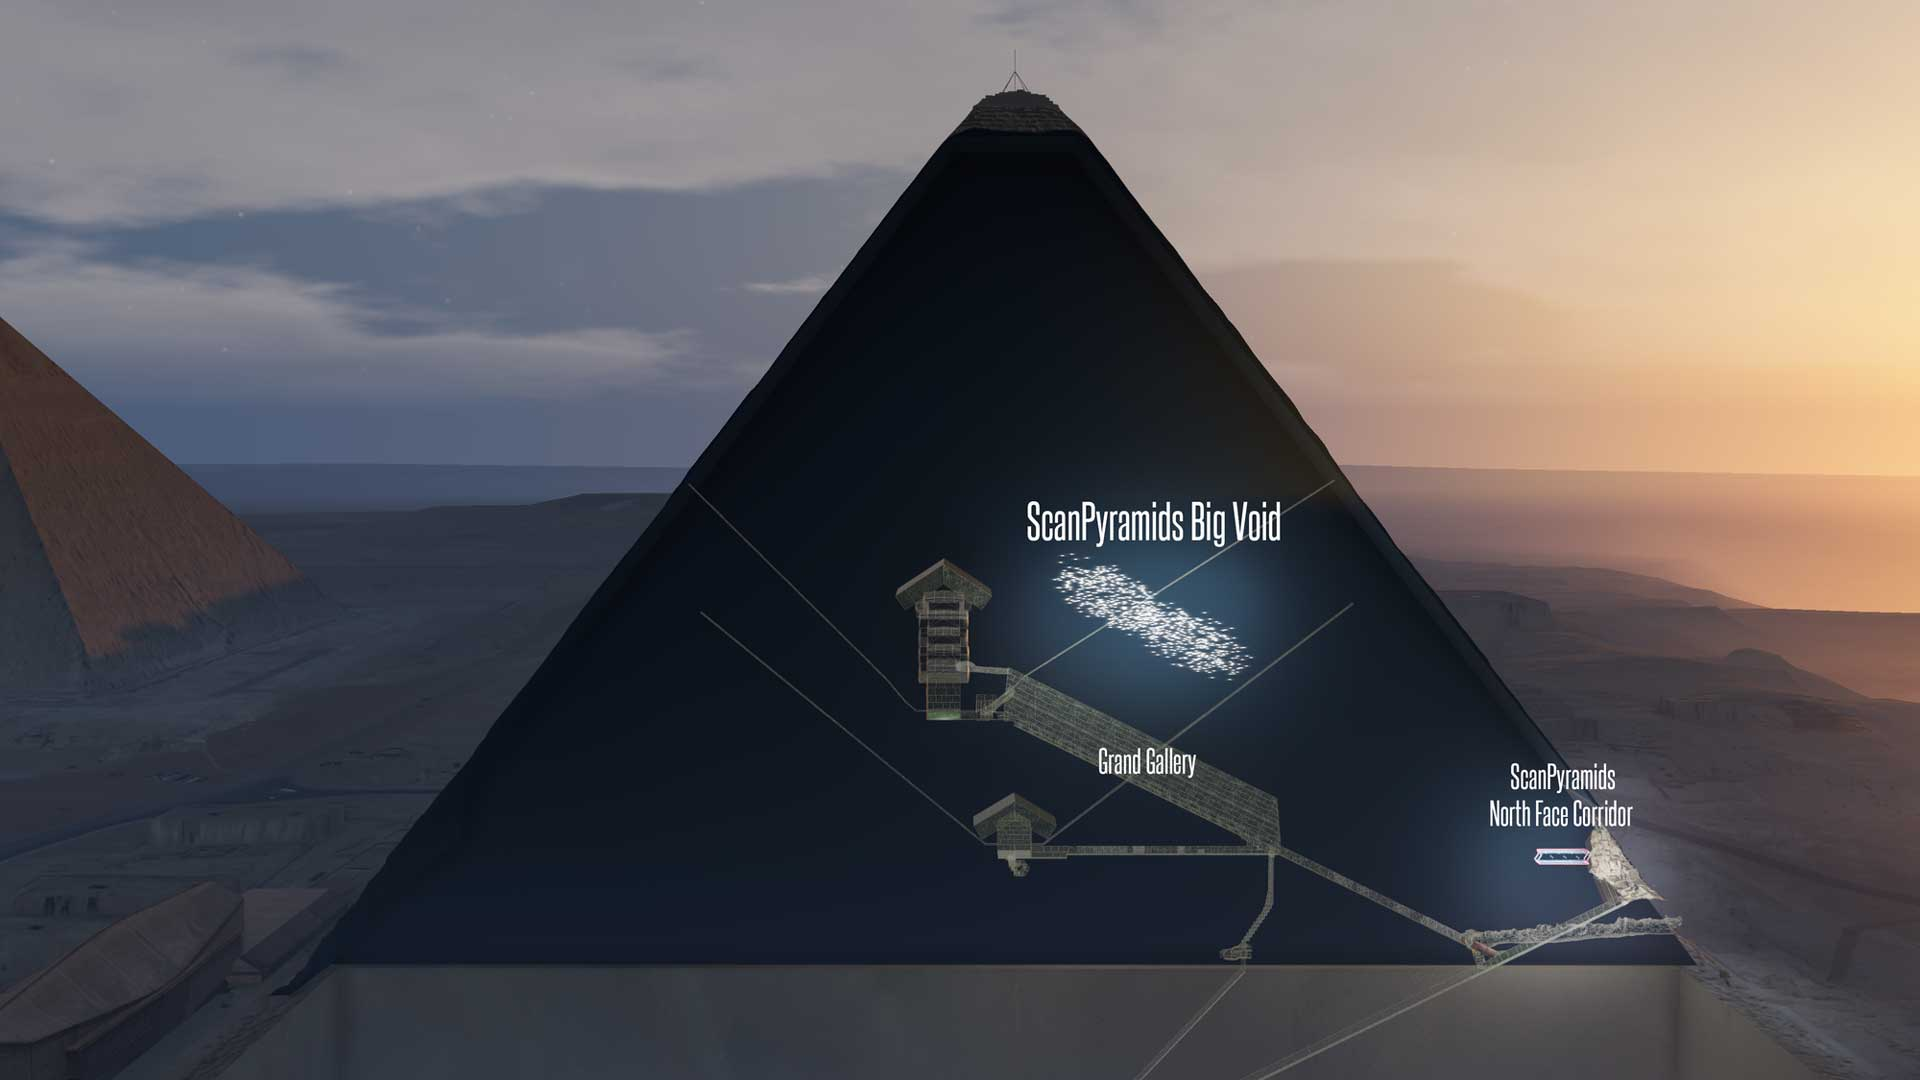 Researchers discover two new cavities in the Great Pyramid (Image: © ScanPyramids)